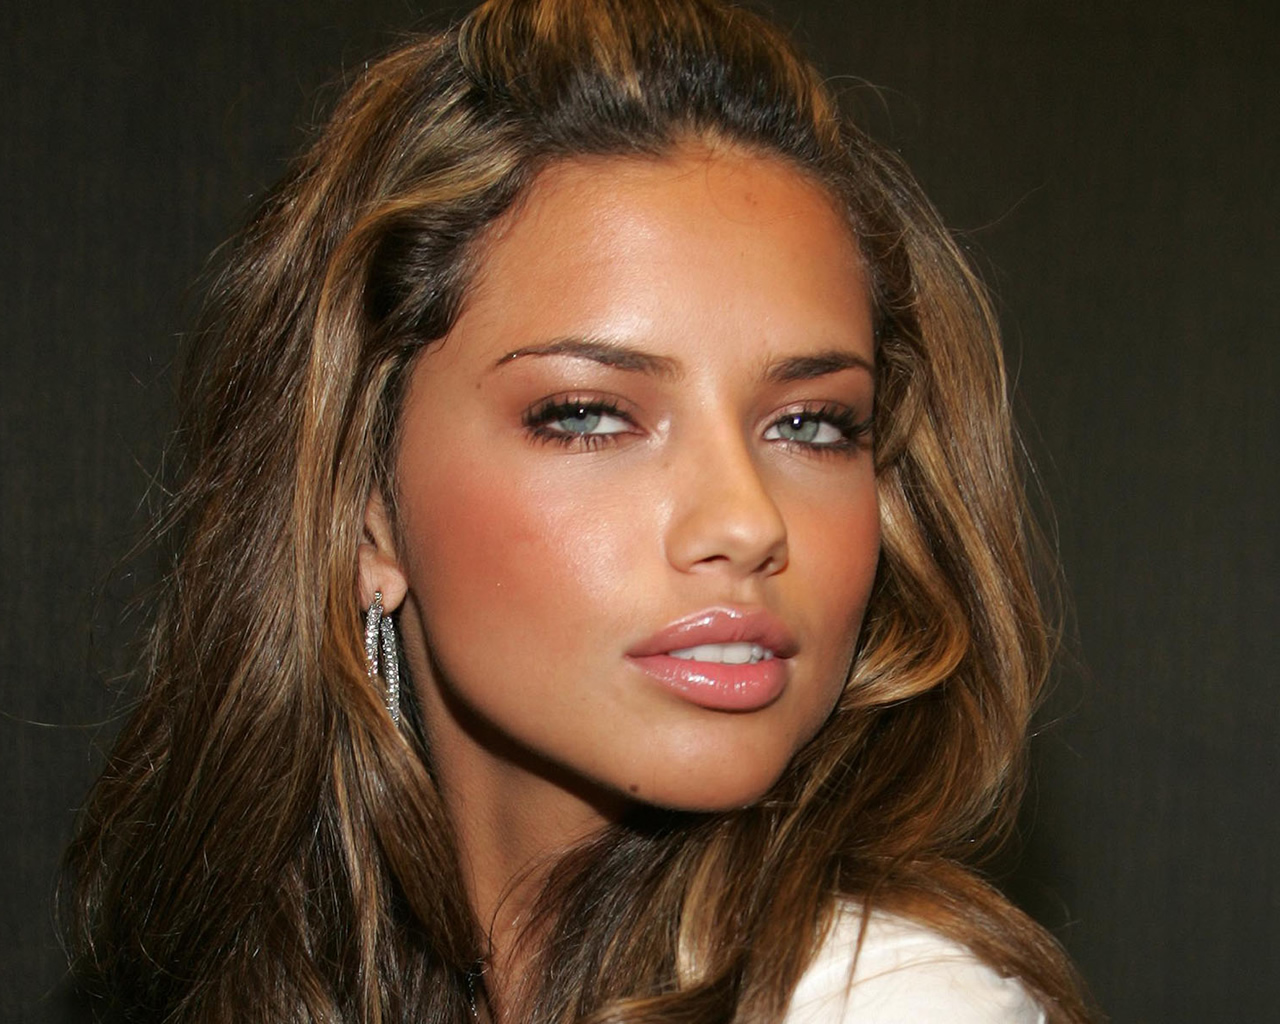 adriana lima photos - photo #37